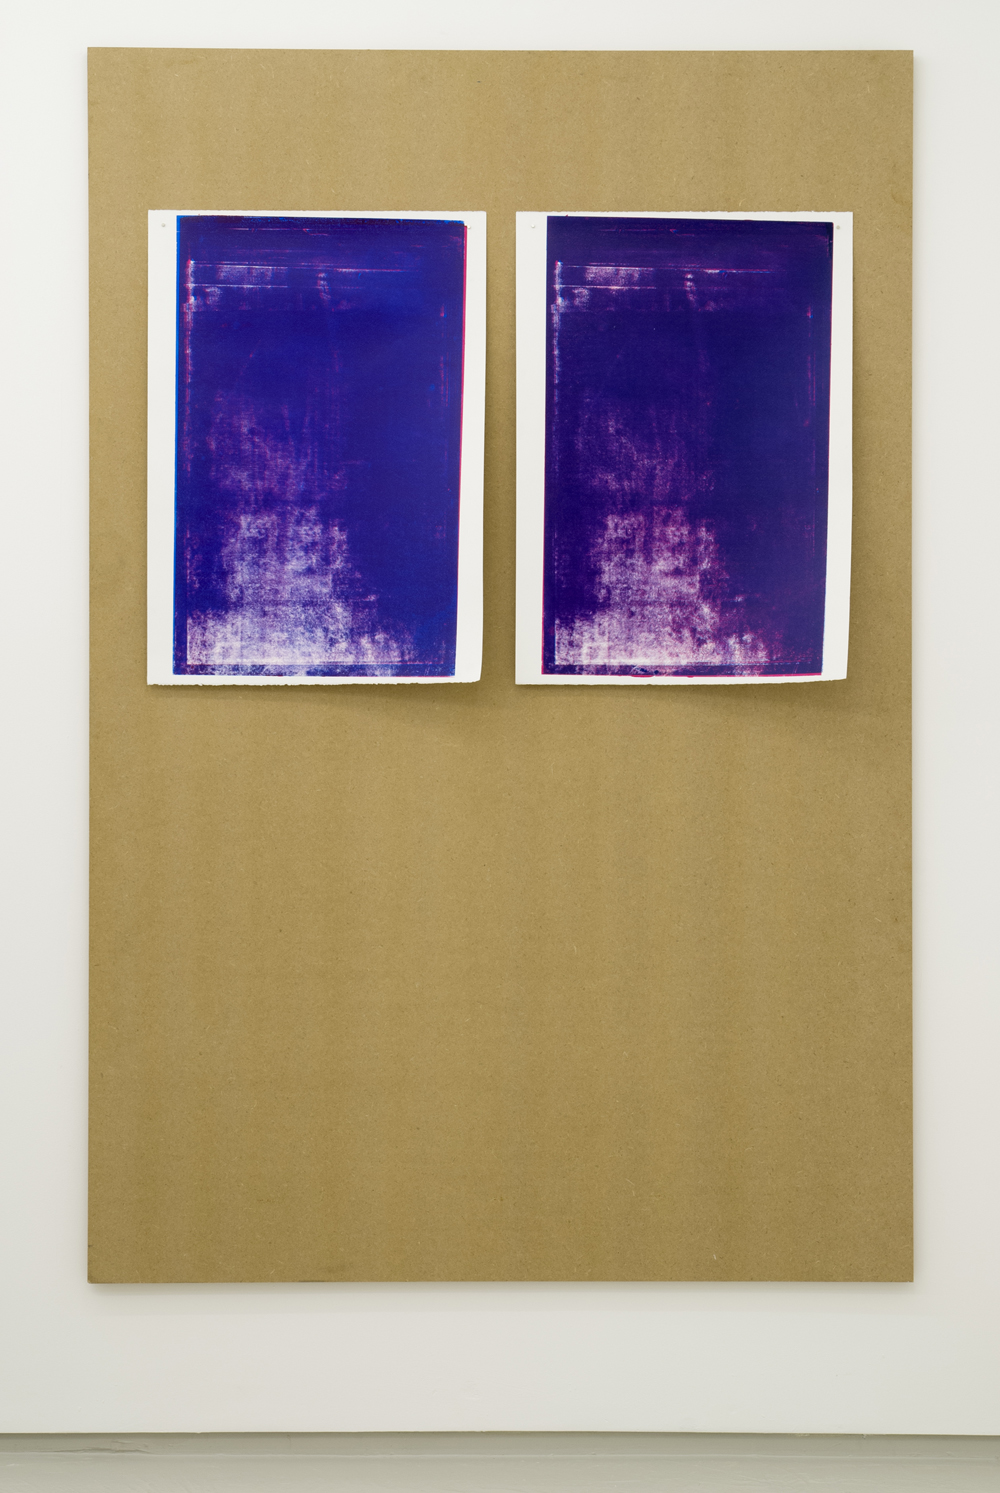 Jack Brindley,  Swansong (mesh entropy) II  and  III , 2014, Acrylic on canvas, 60 x 42 cm